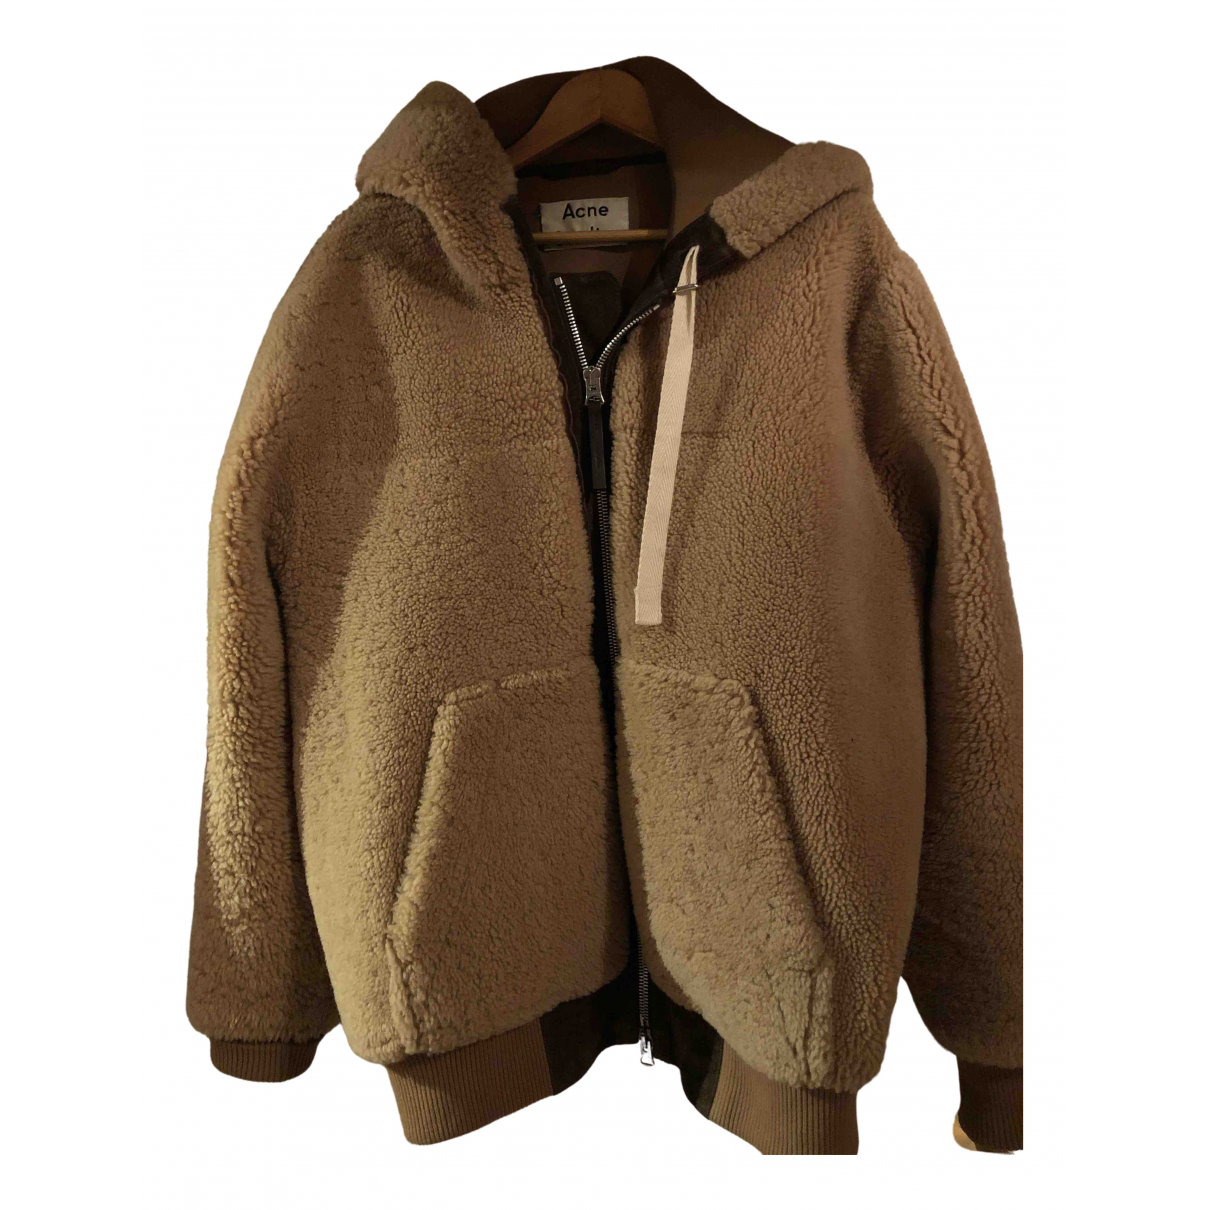 Acne Studios \N Camel Shearling jacket  for Men L International